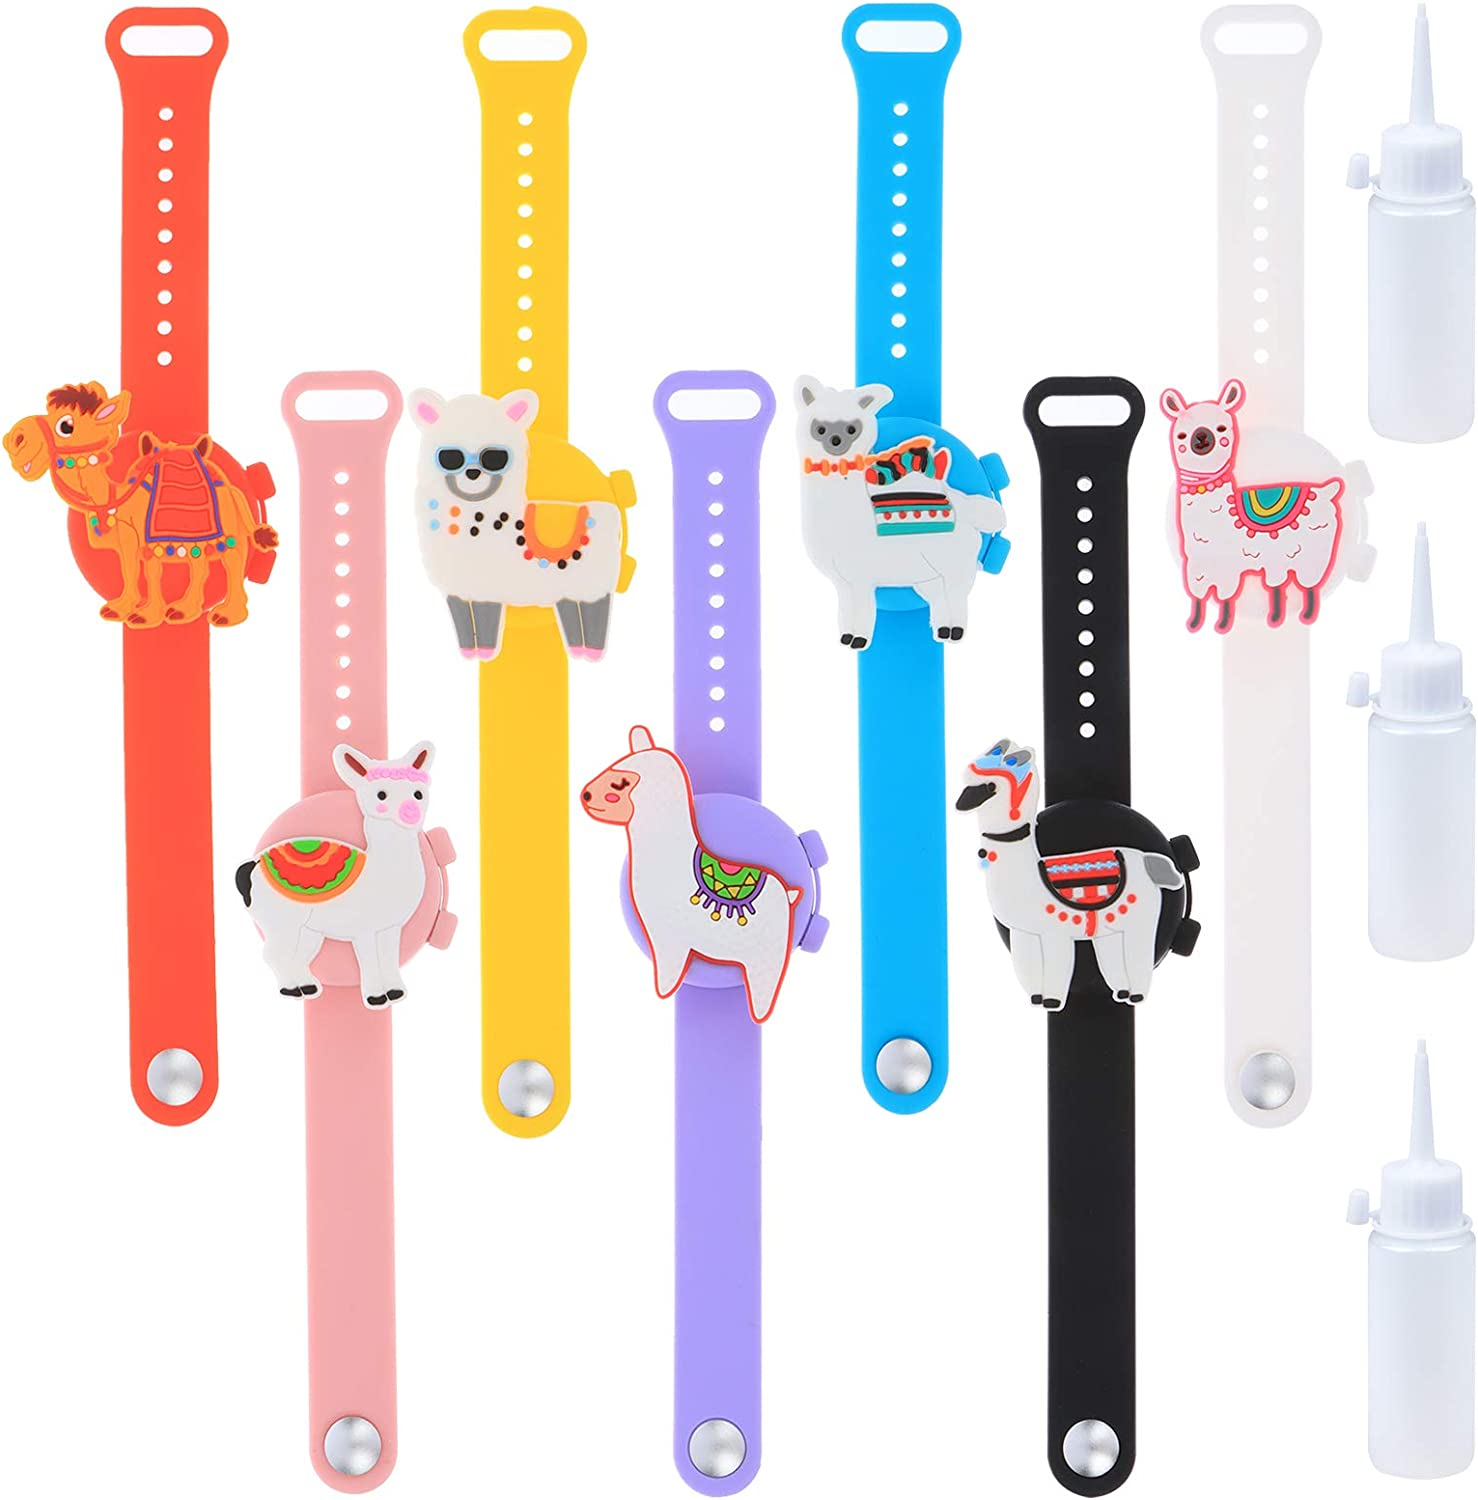 Ioffersuper 7Pcs Our shop most popular Kids Hand 70% OFF Outlet Soap Bottles 3 Refill Wristbands with